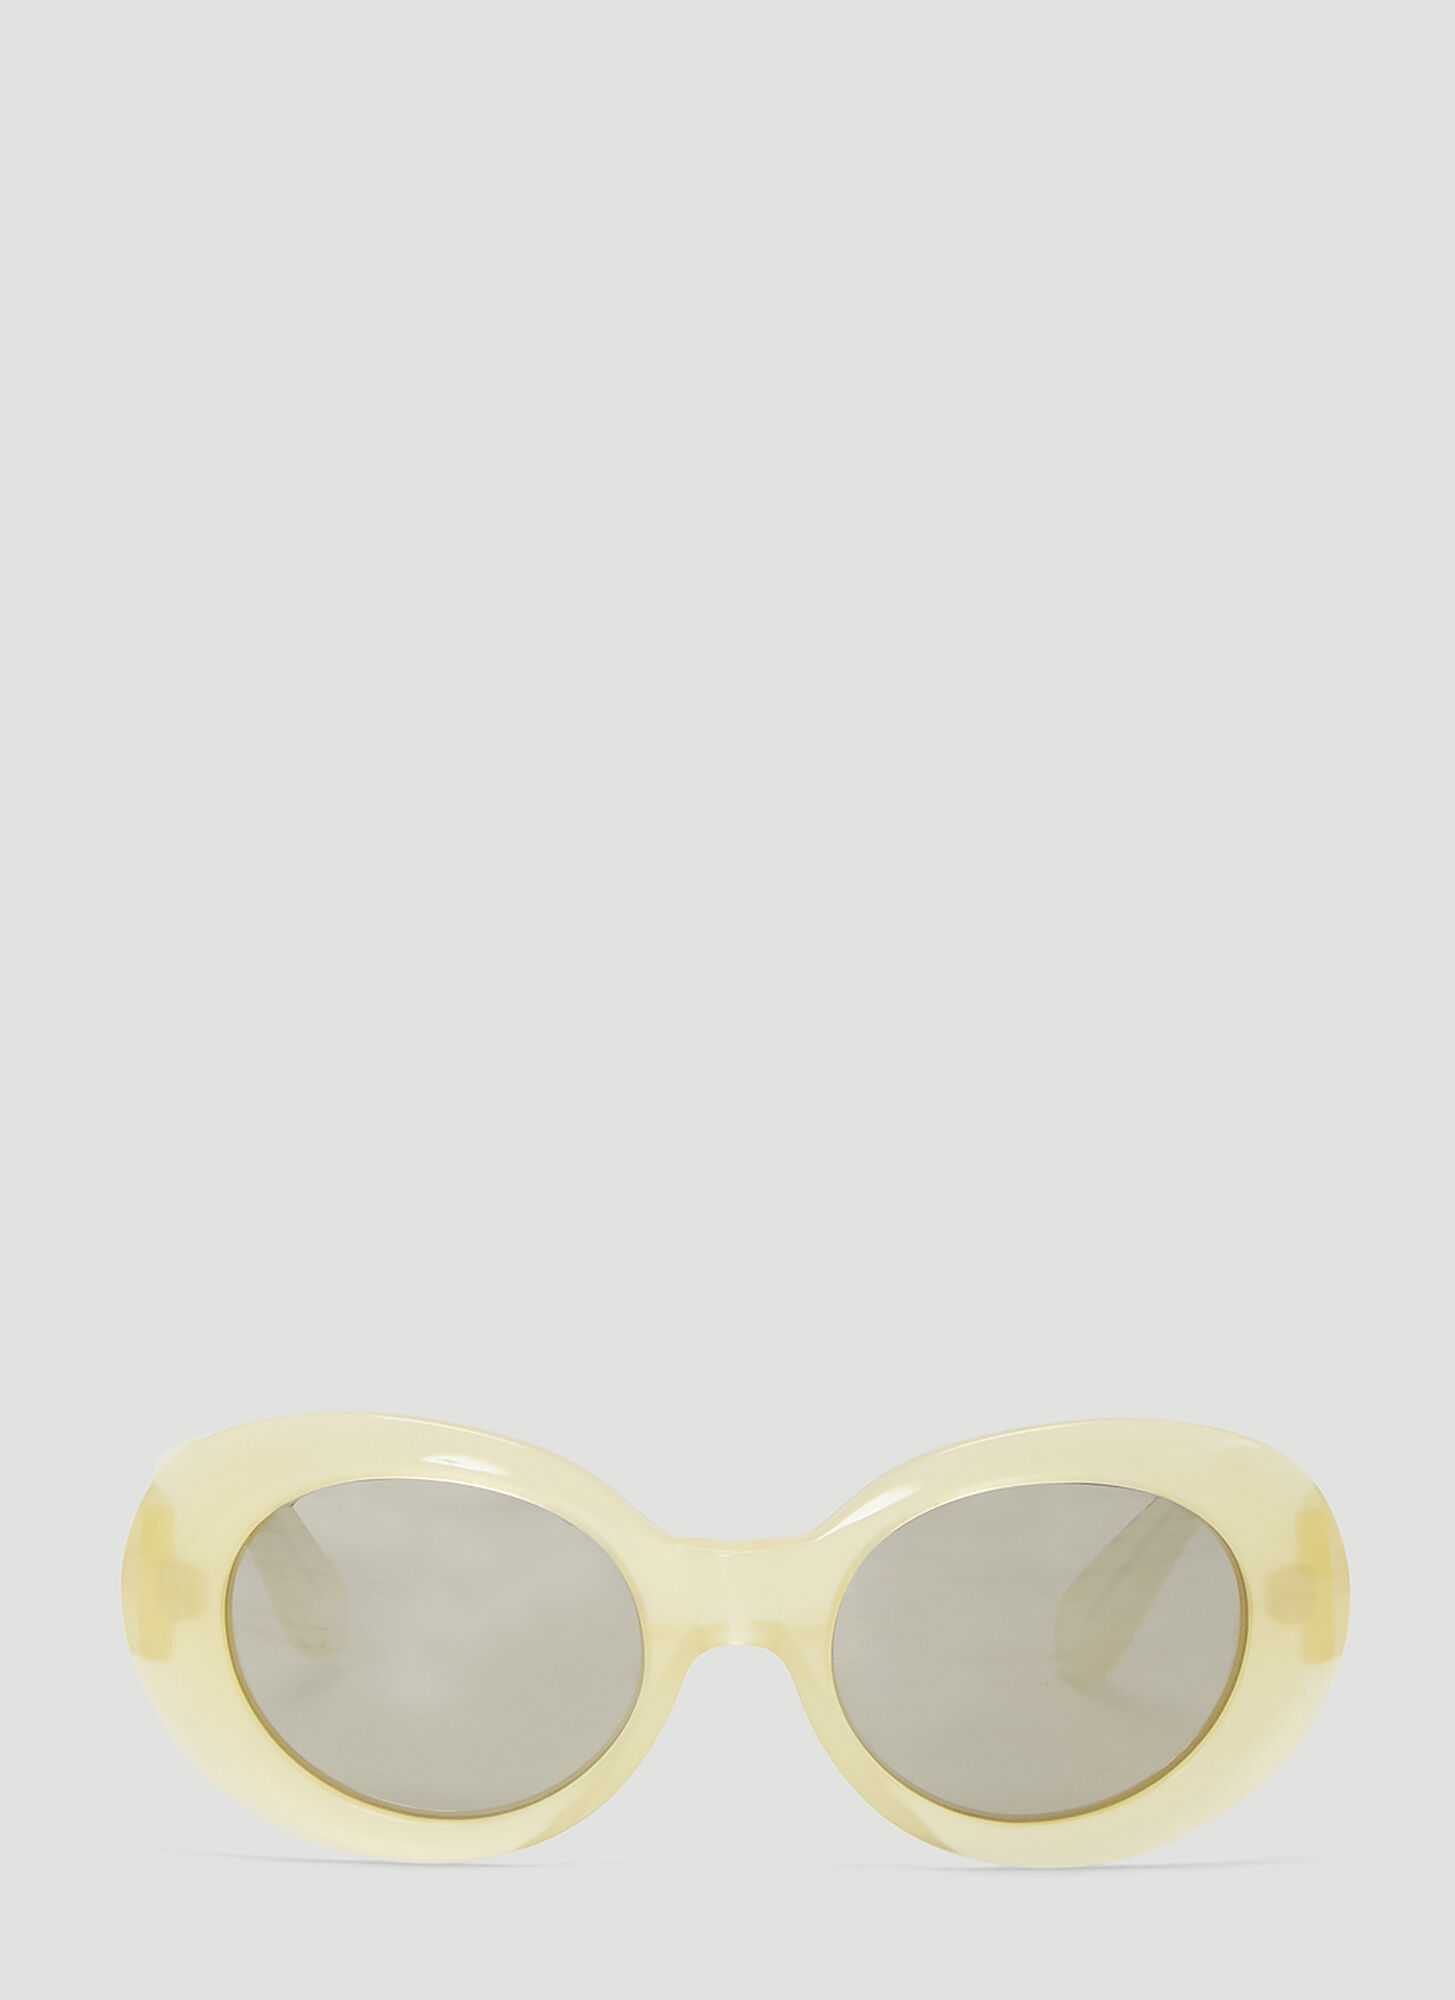 Acne Studios Mustang Sunglasses in Yellow